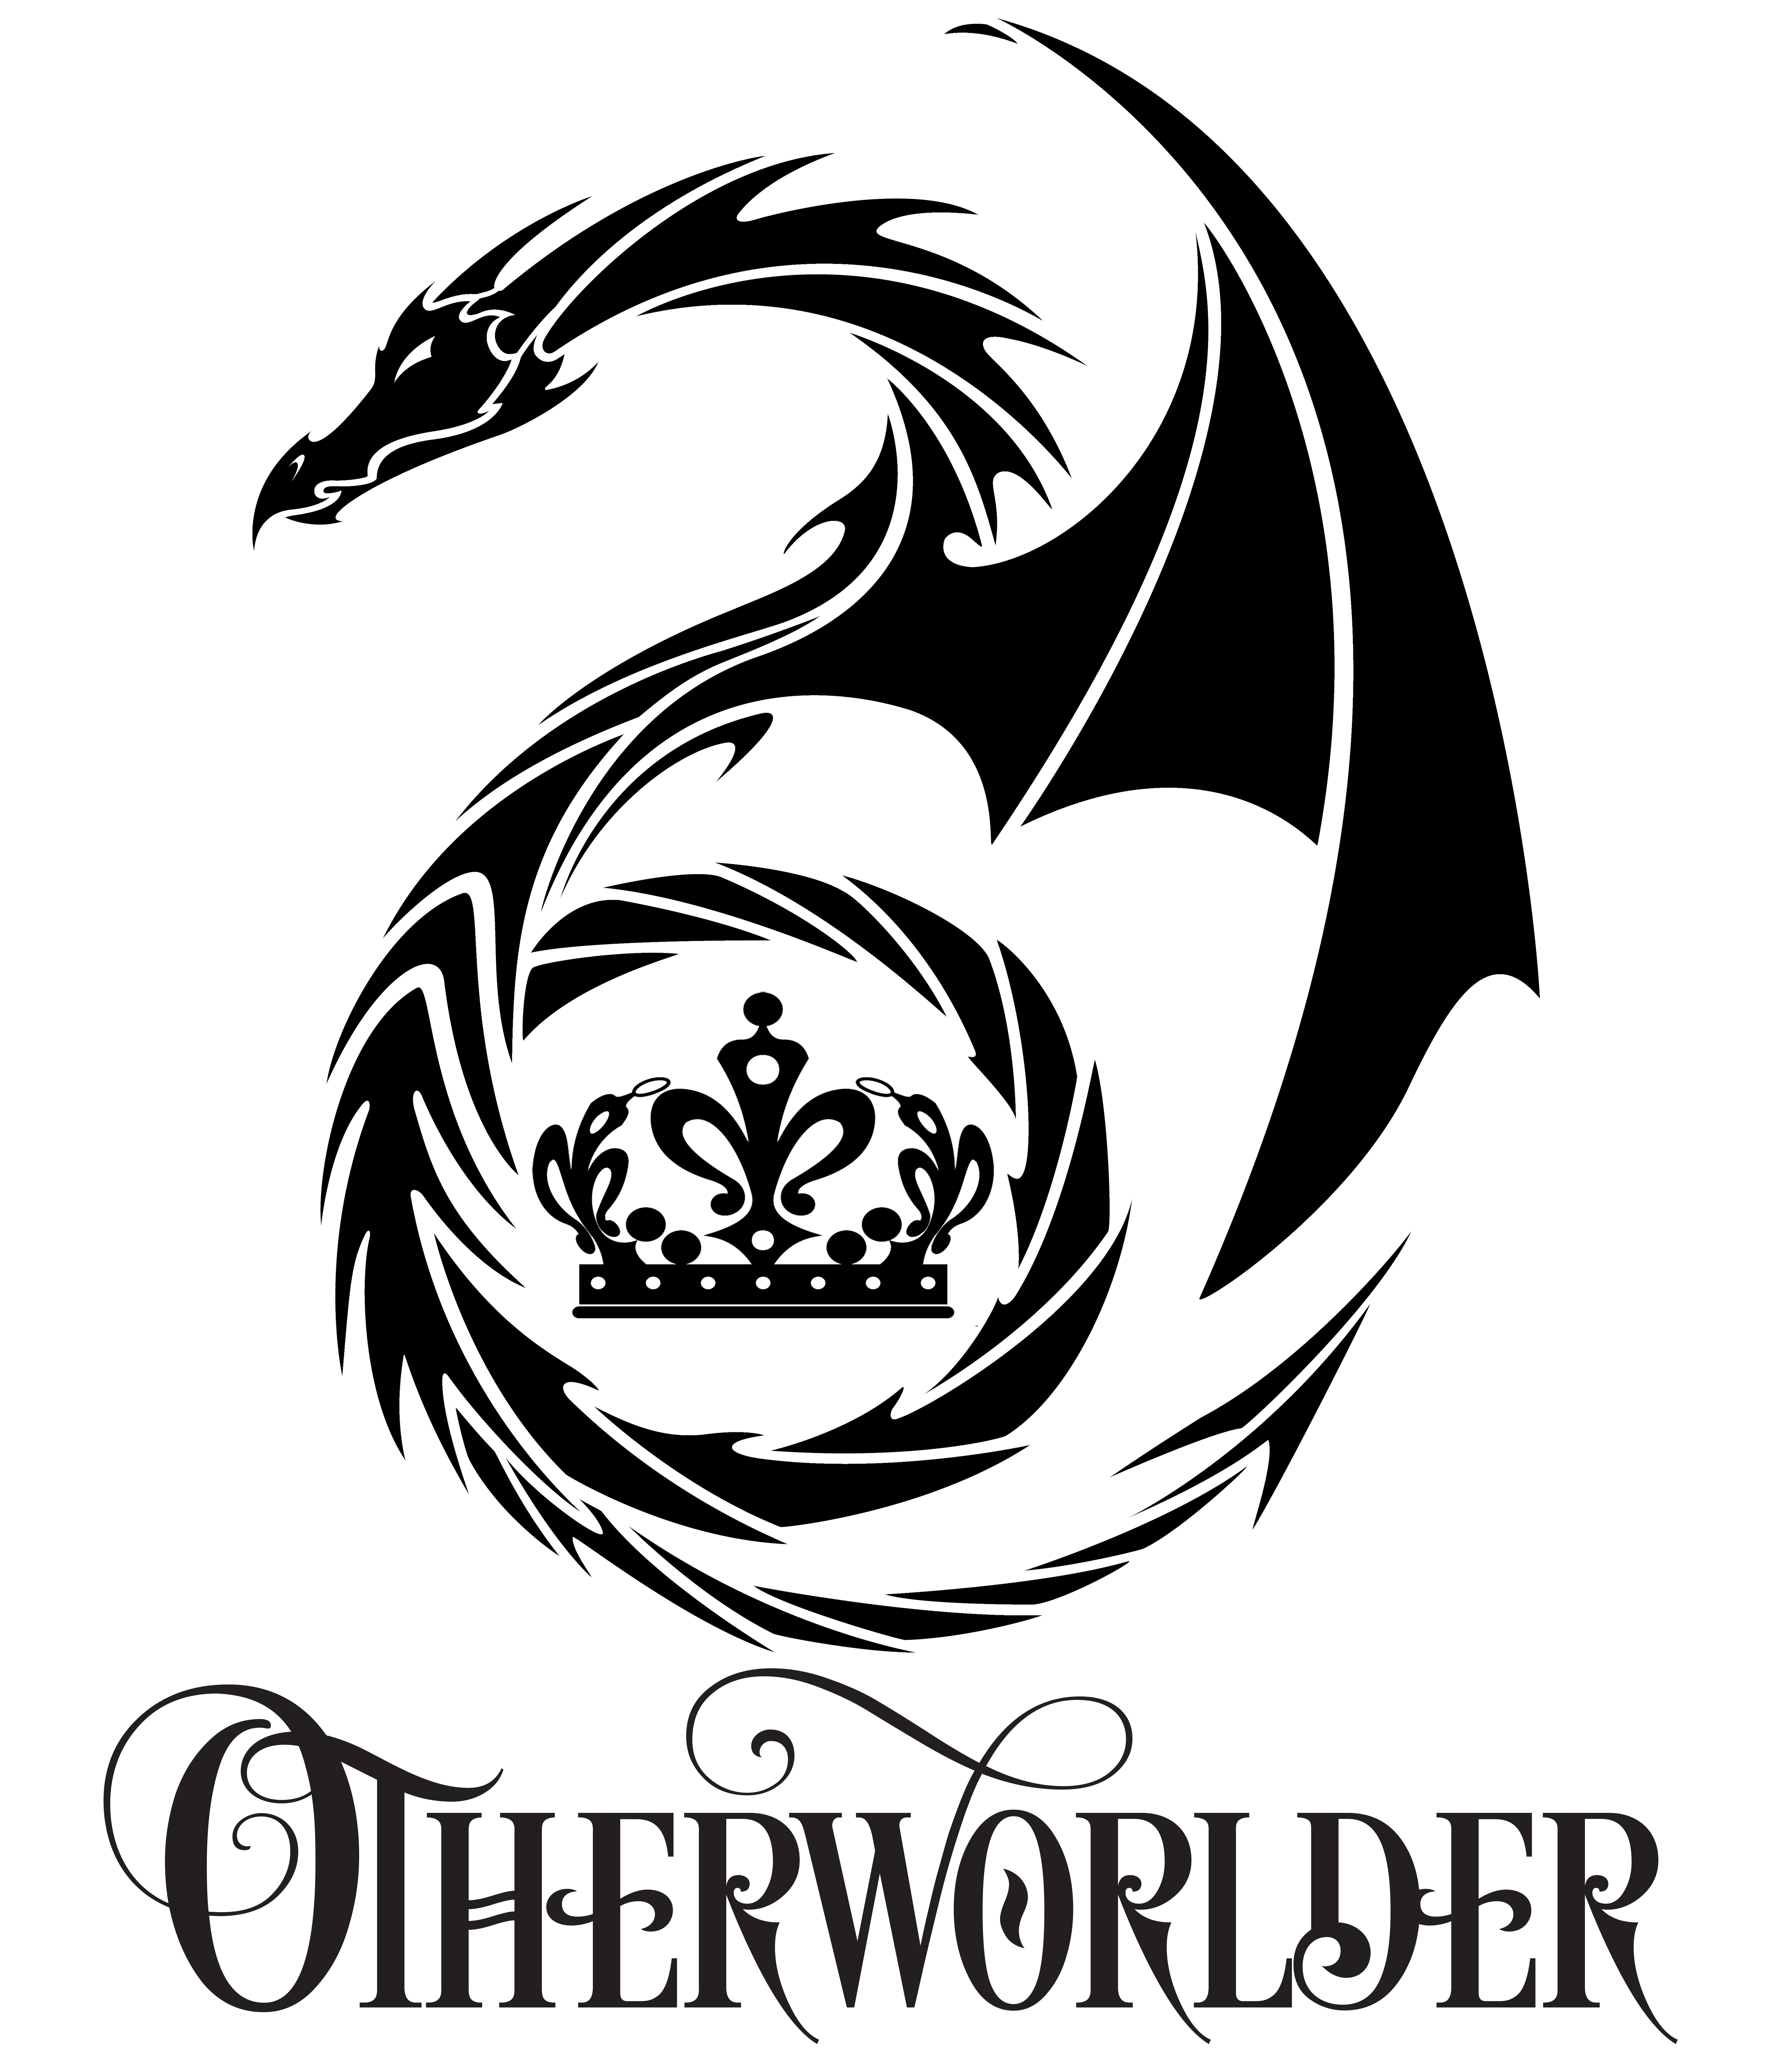 Otherworlder